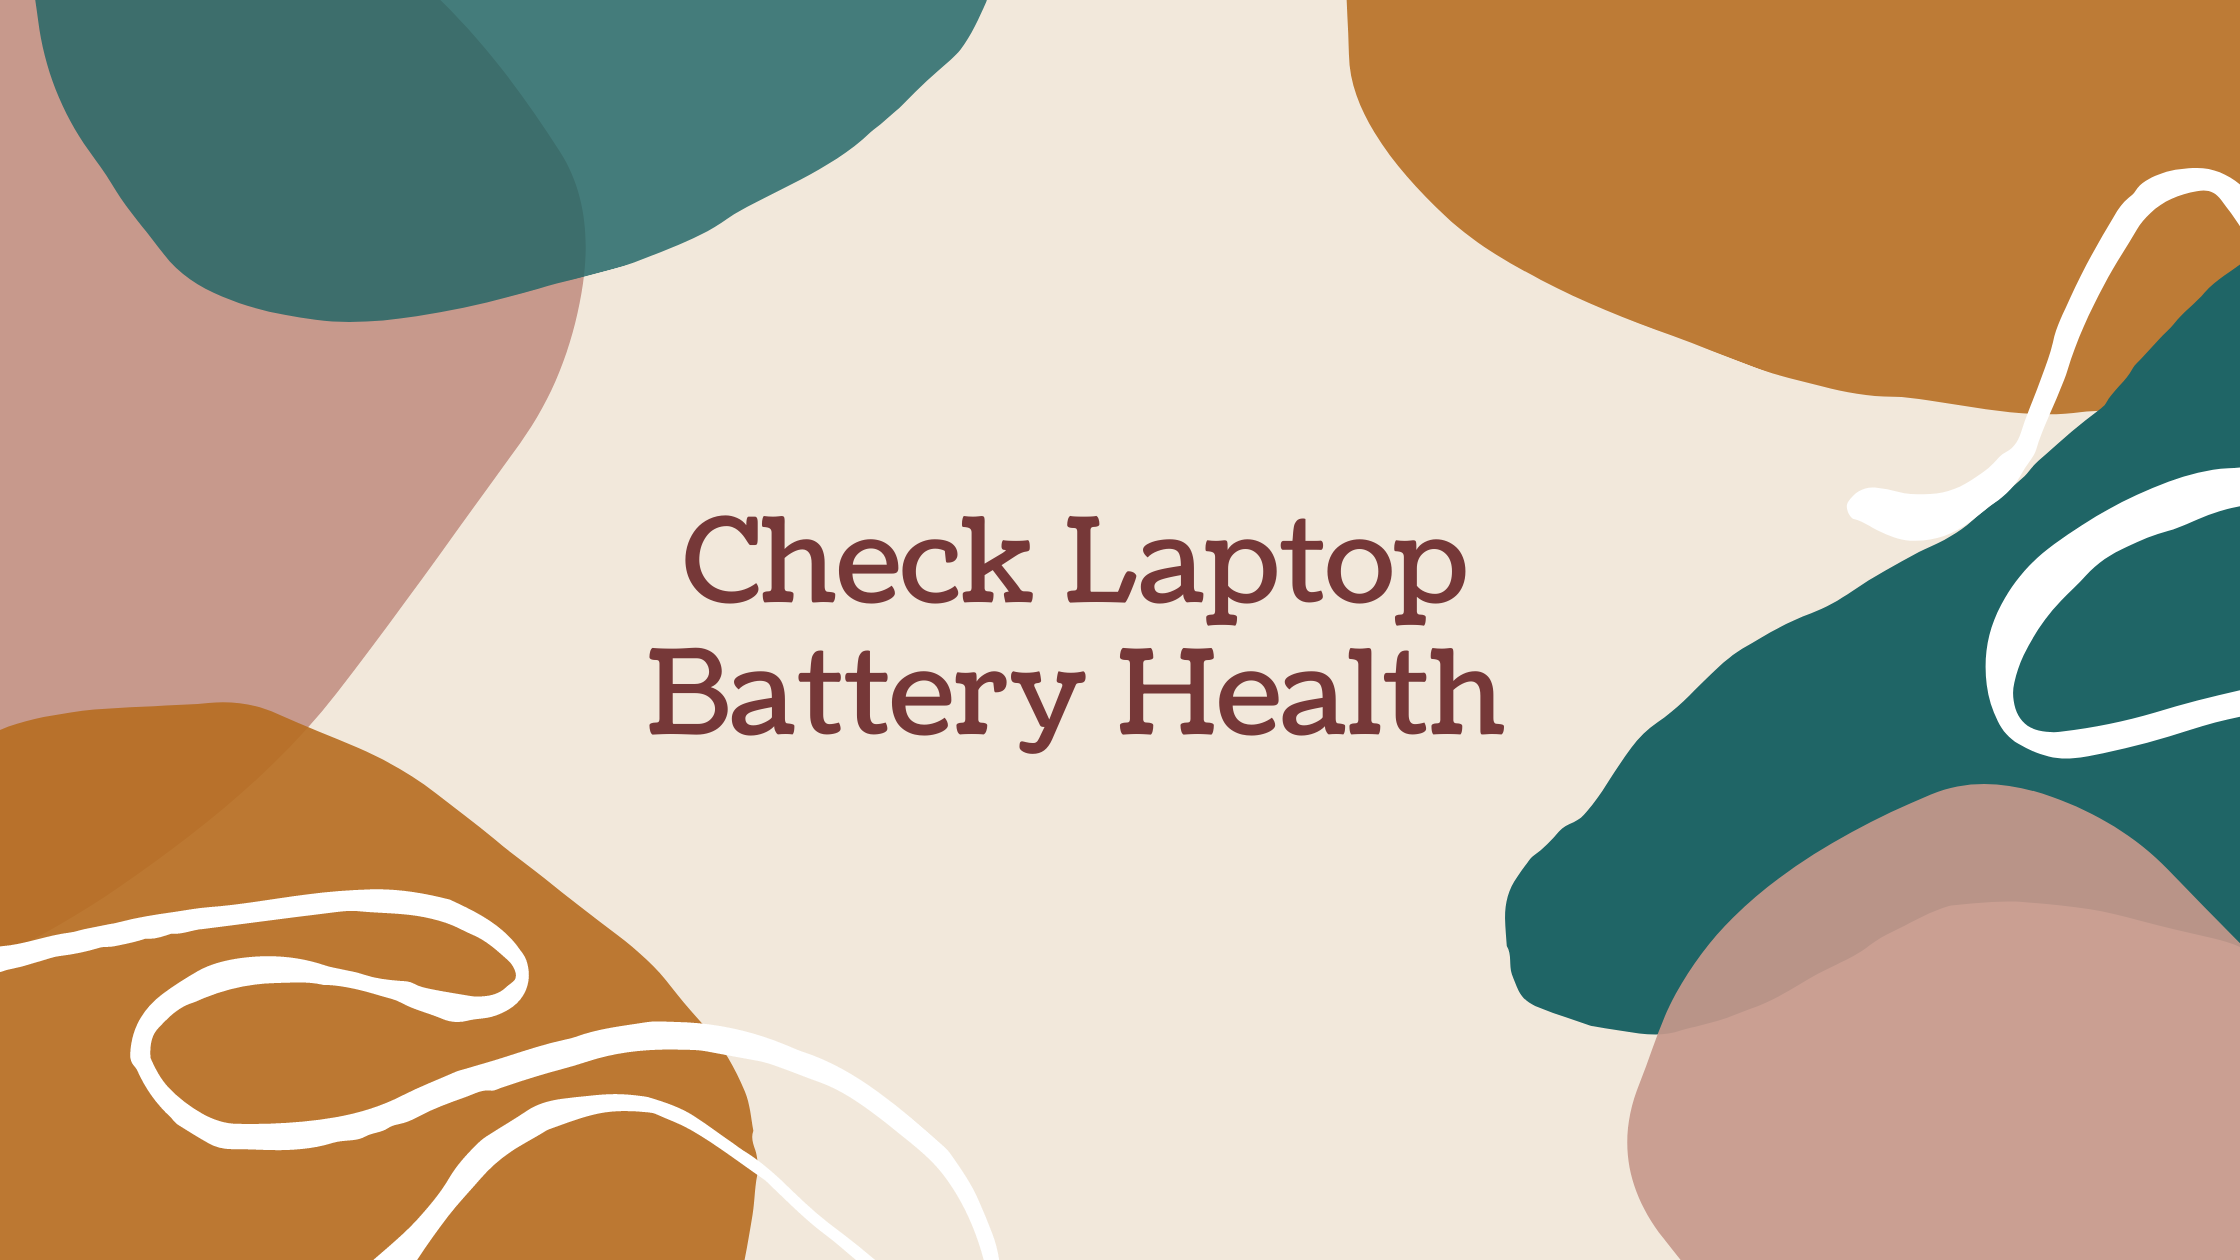 How to Check Laptop Battery Health in Windows 10